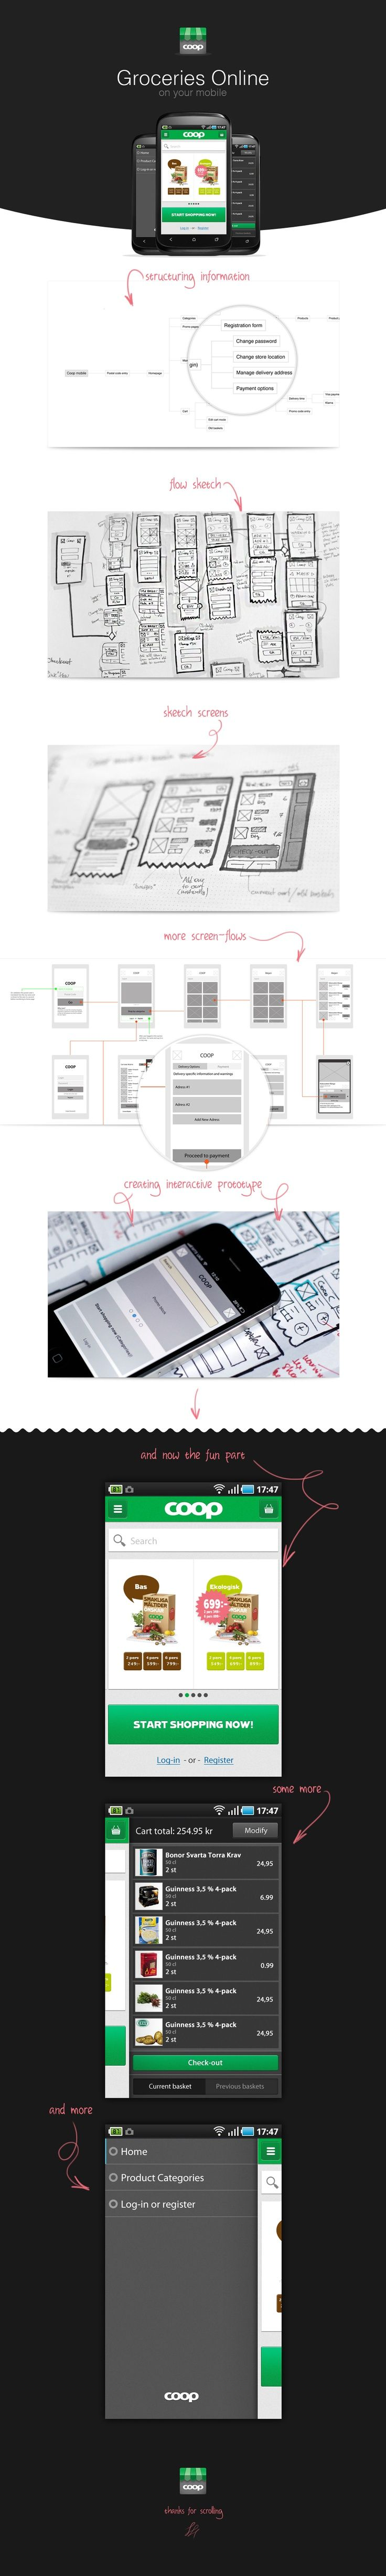 1000 images about wireframe on pinterest itunes customer experience and design process. Black Bedroom Furniture Sets. Home Design Ideas